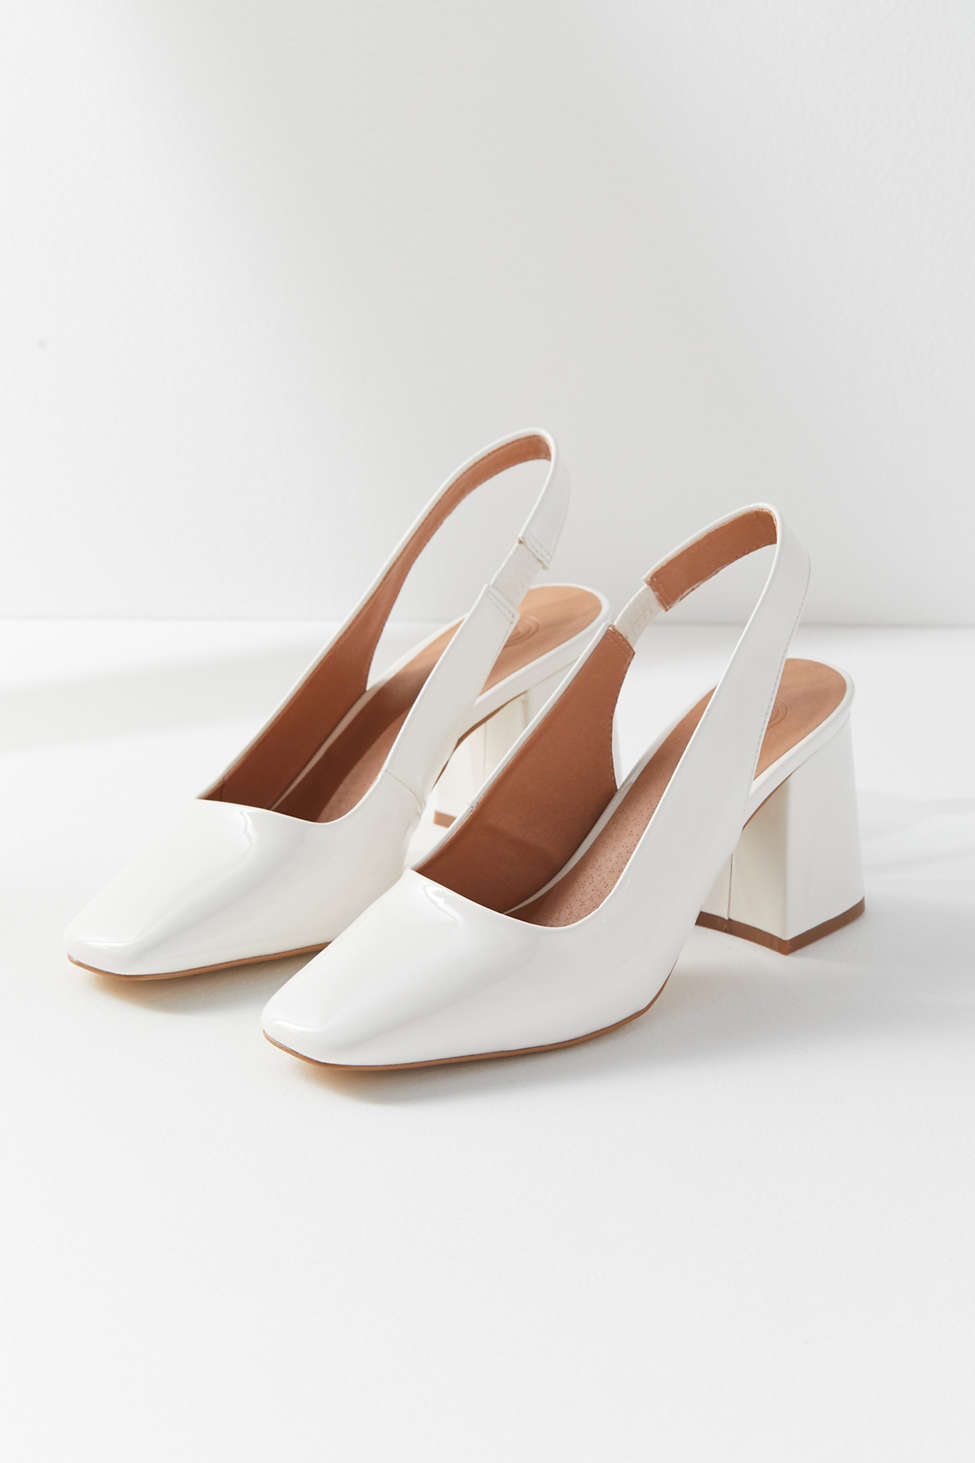 10 Chic Shoes To Wear To Your Internship